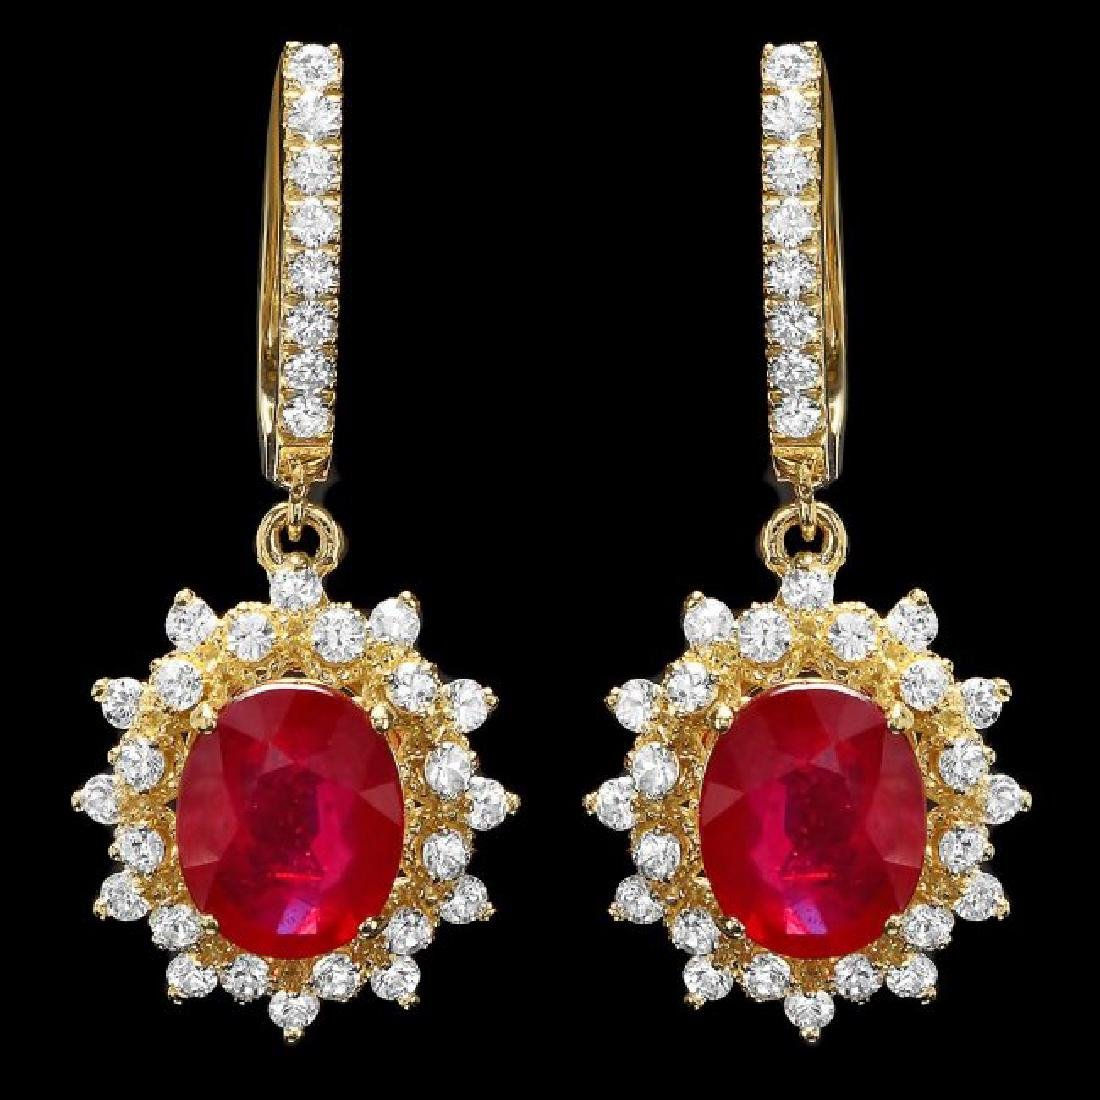 14k Gold 6.5ct Ruby 2.00ct Diamond Earrings